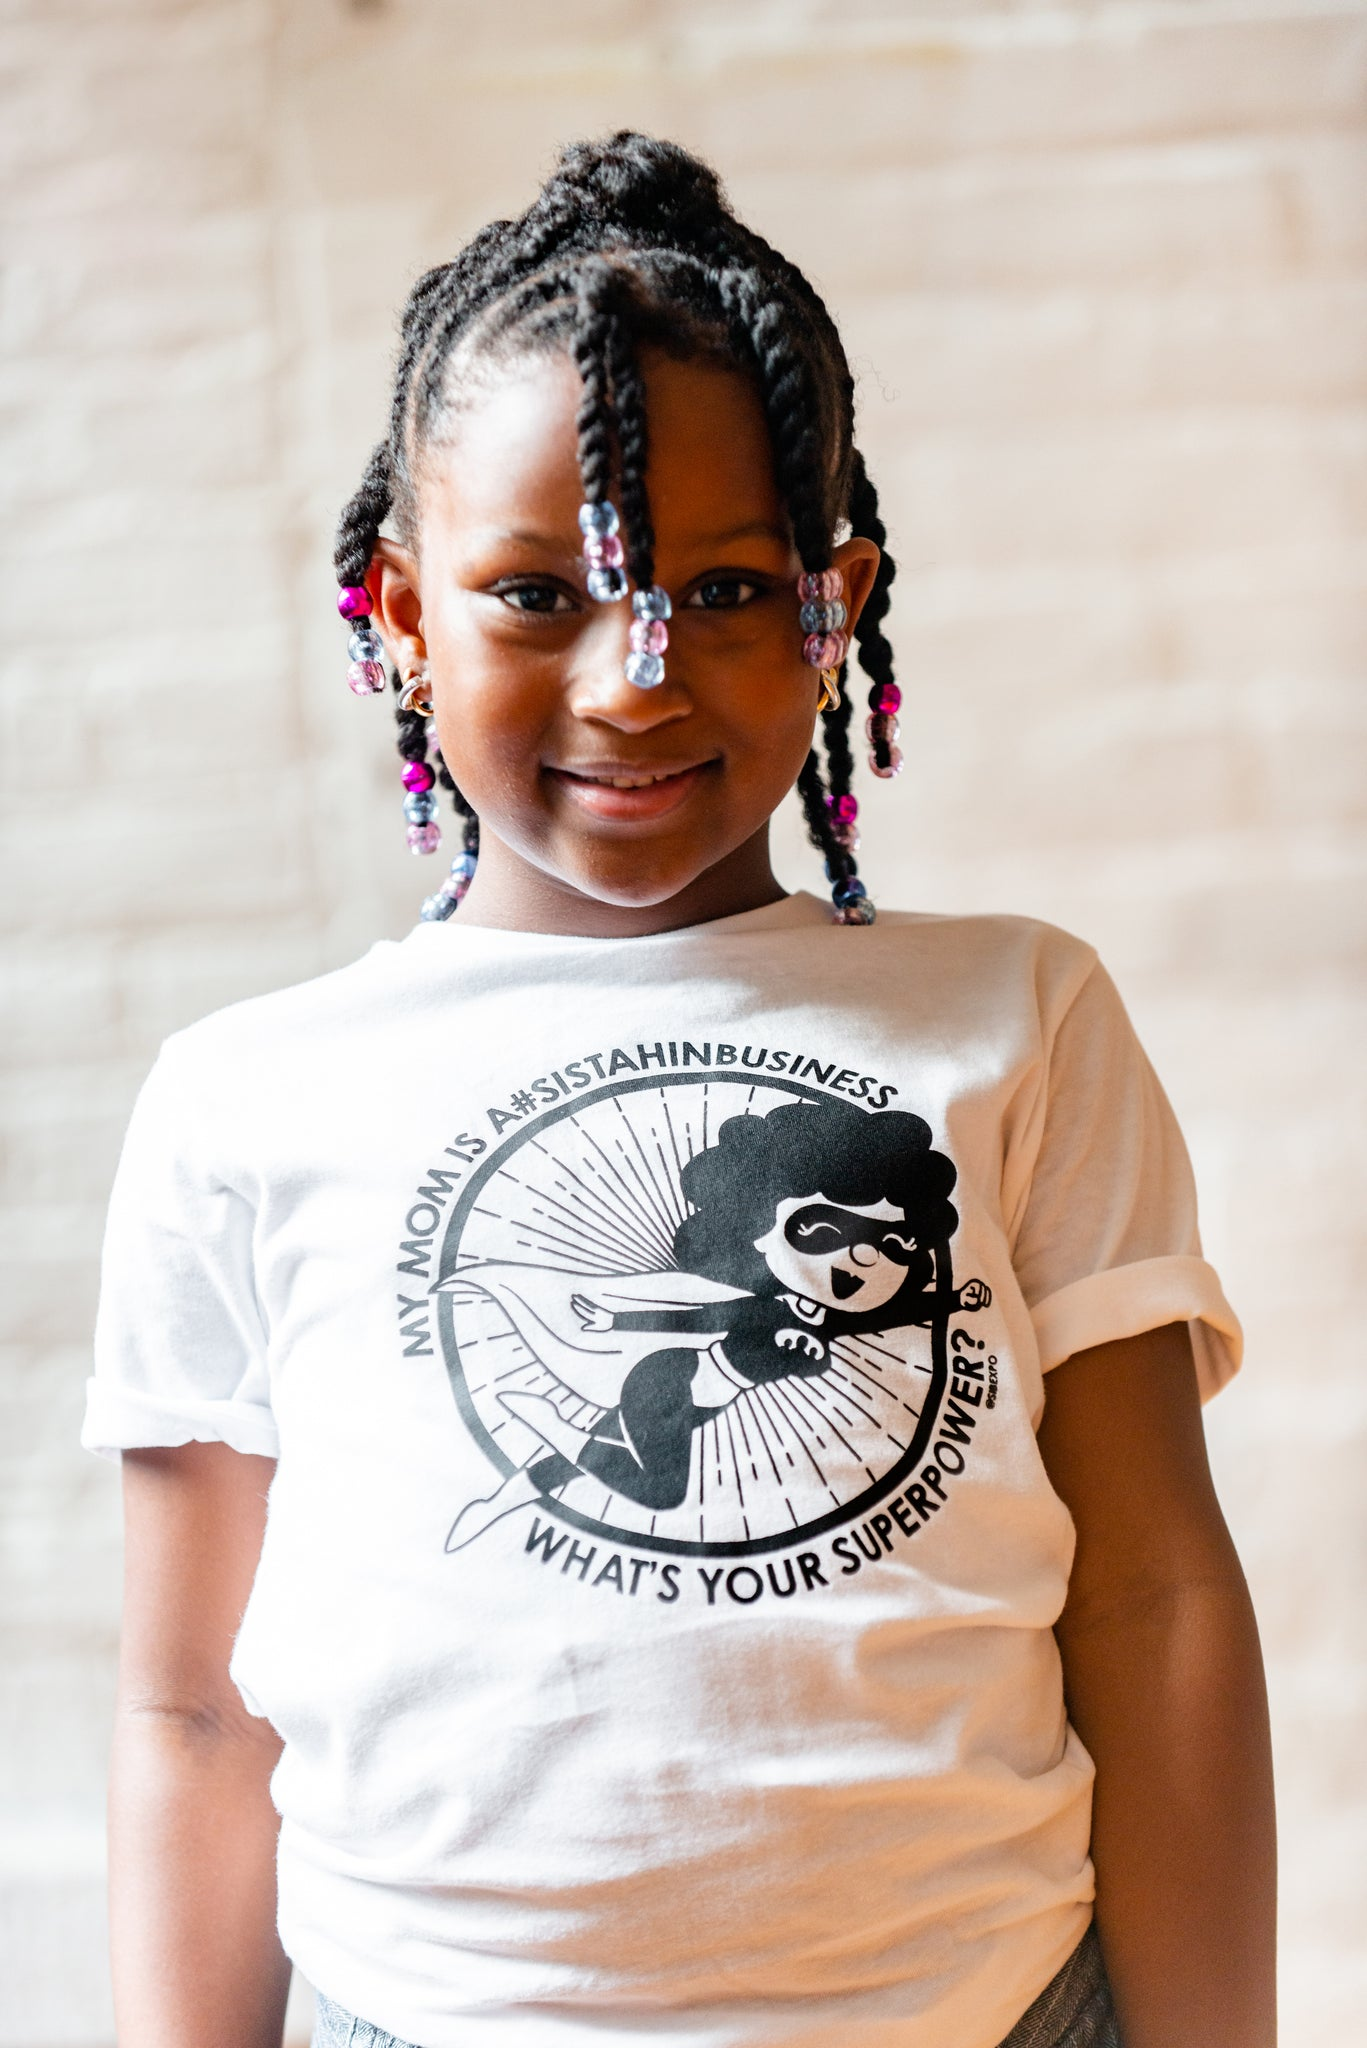 My Mom is a #SistahinBusiness - Youth Tee